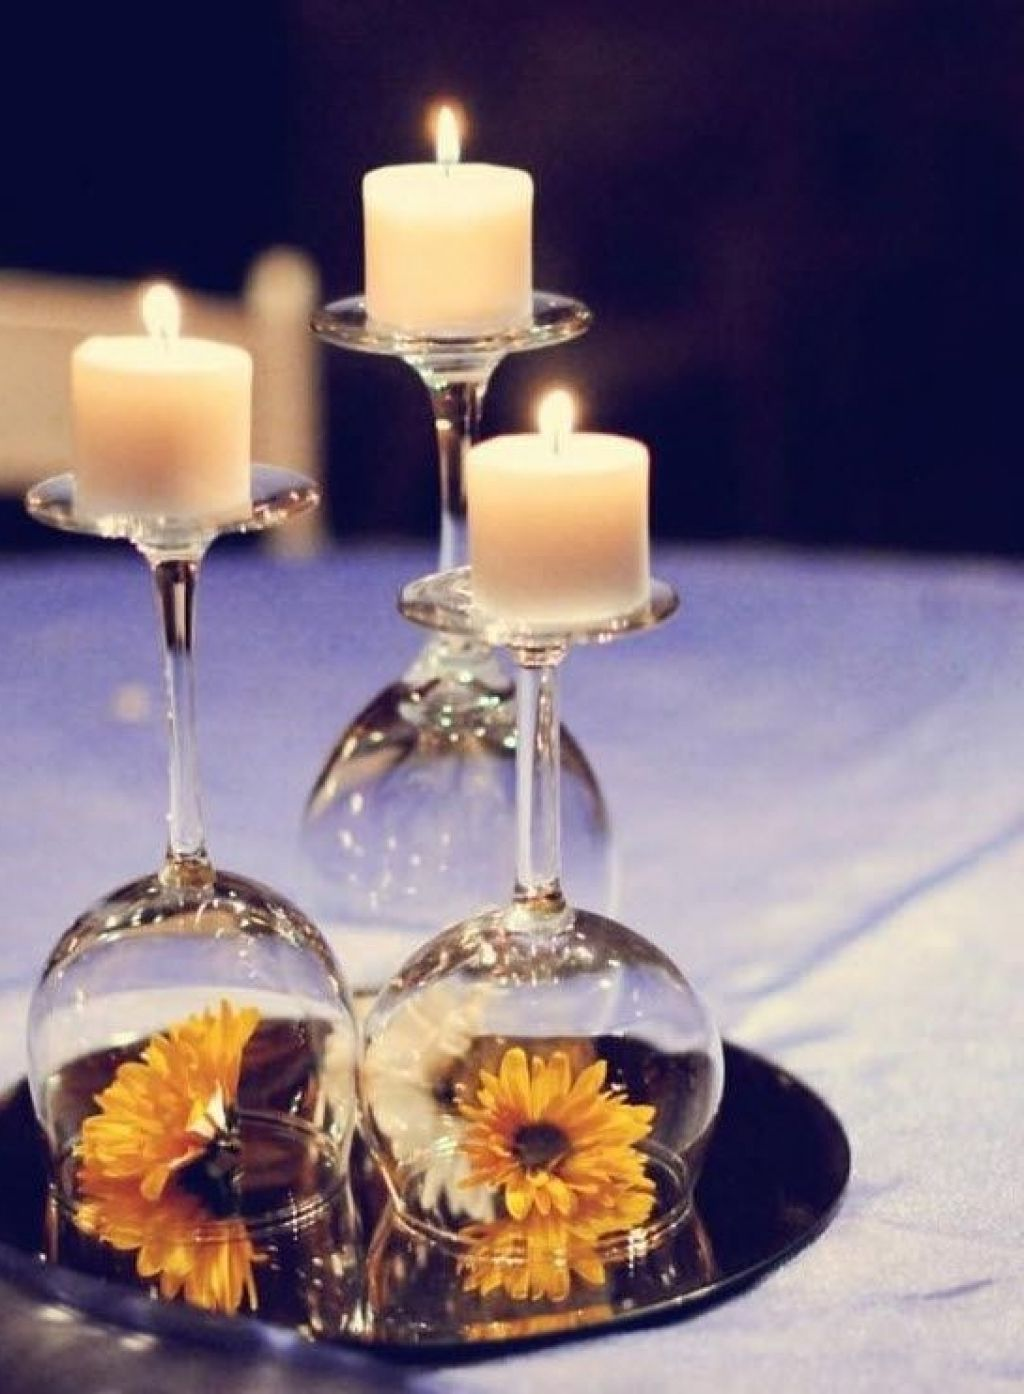 Wedding centerpiece ideas from pinterest wine glass